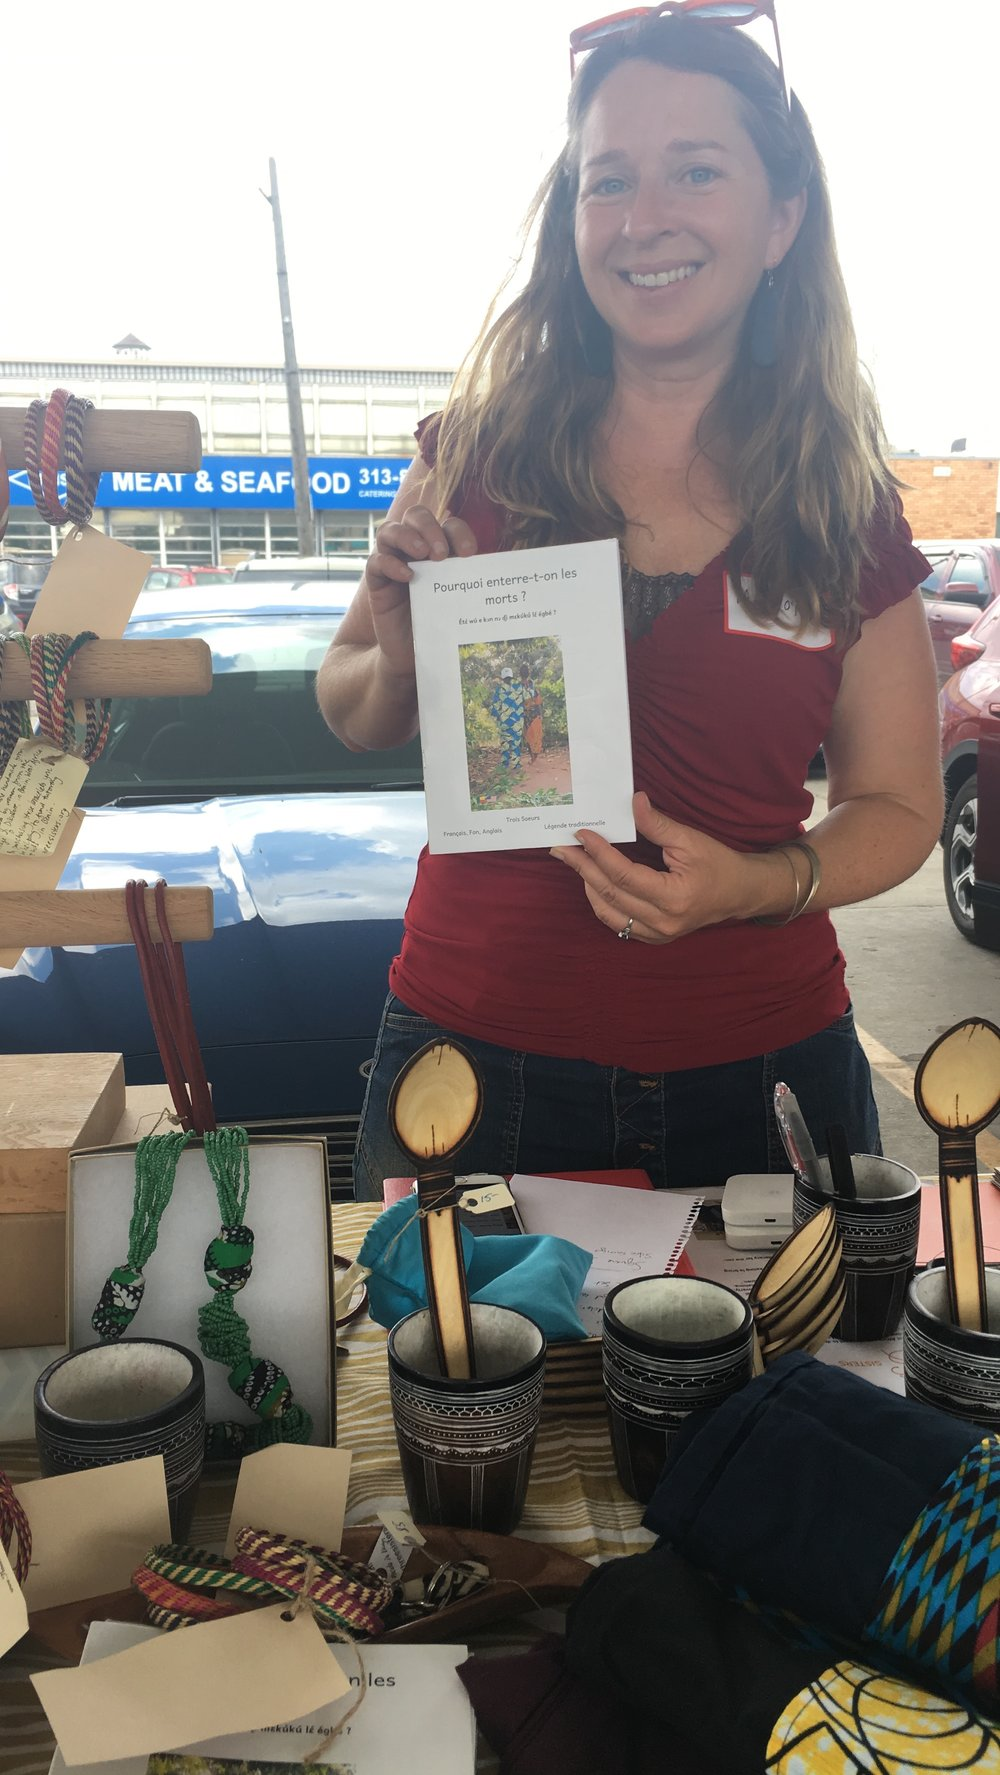 Marcy at the Detroit Festival of Books in the Eastern Market. Photo credit: Sarah Sparkman